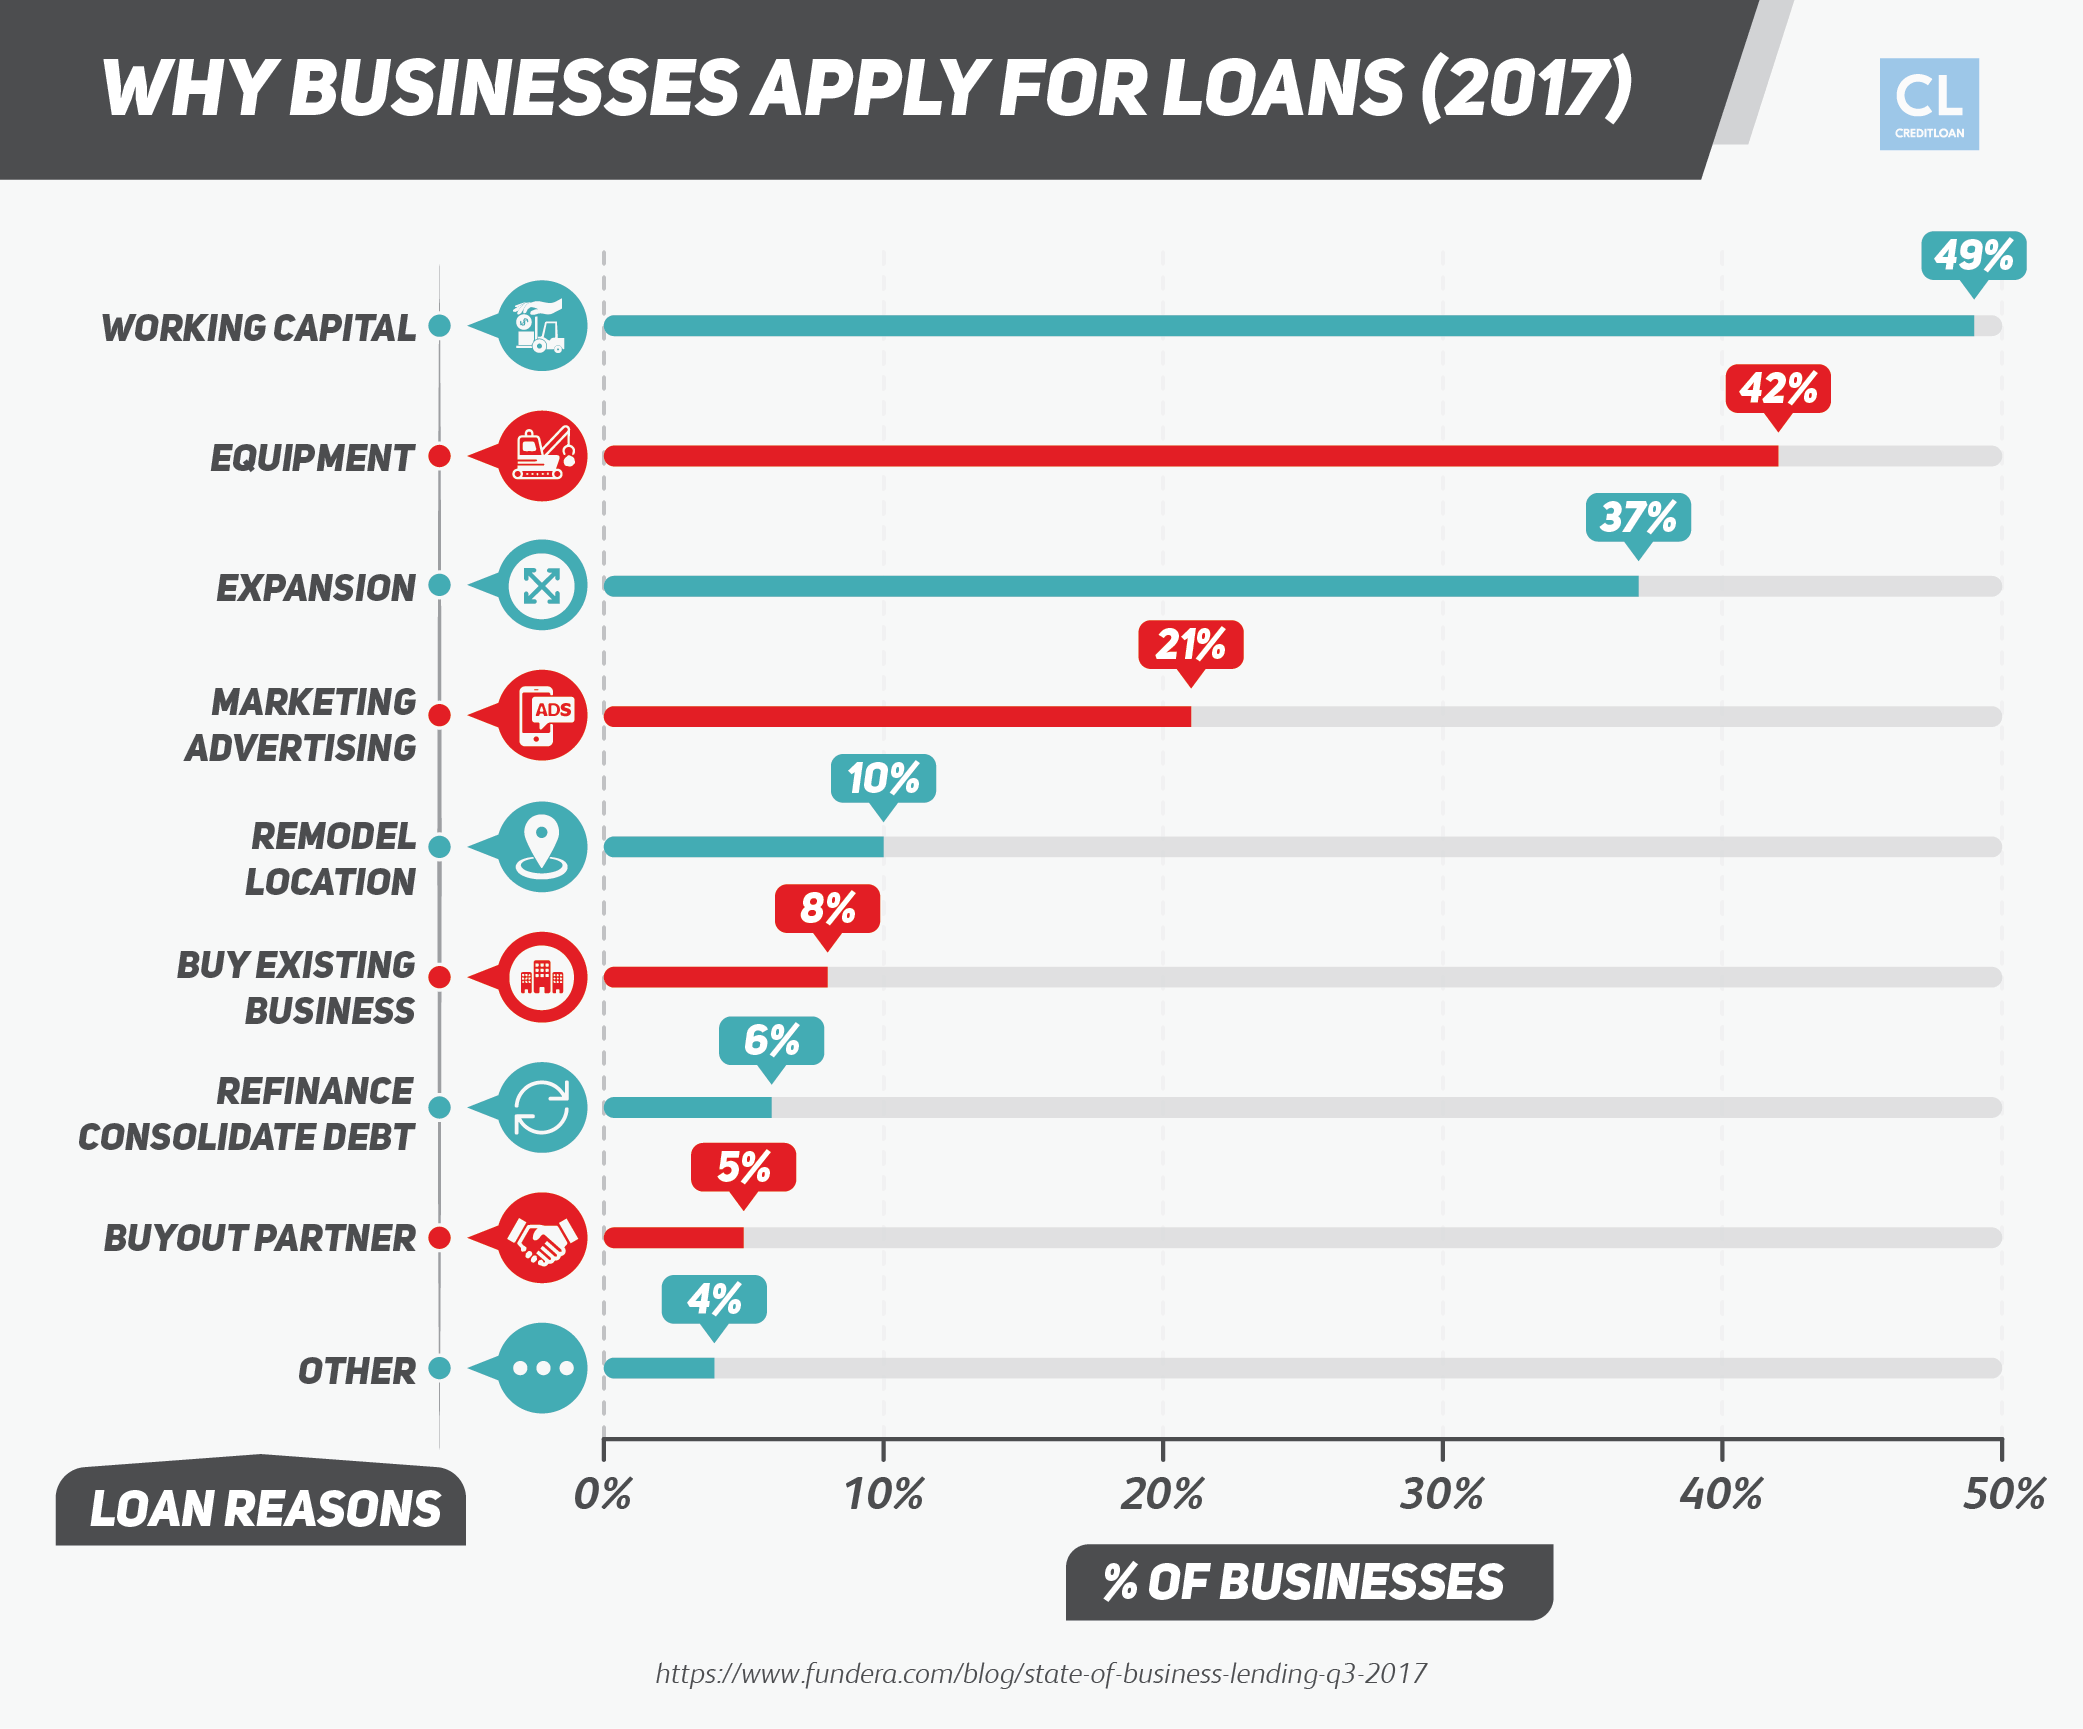 Why Businesses Apply for Loans